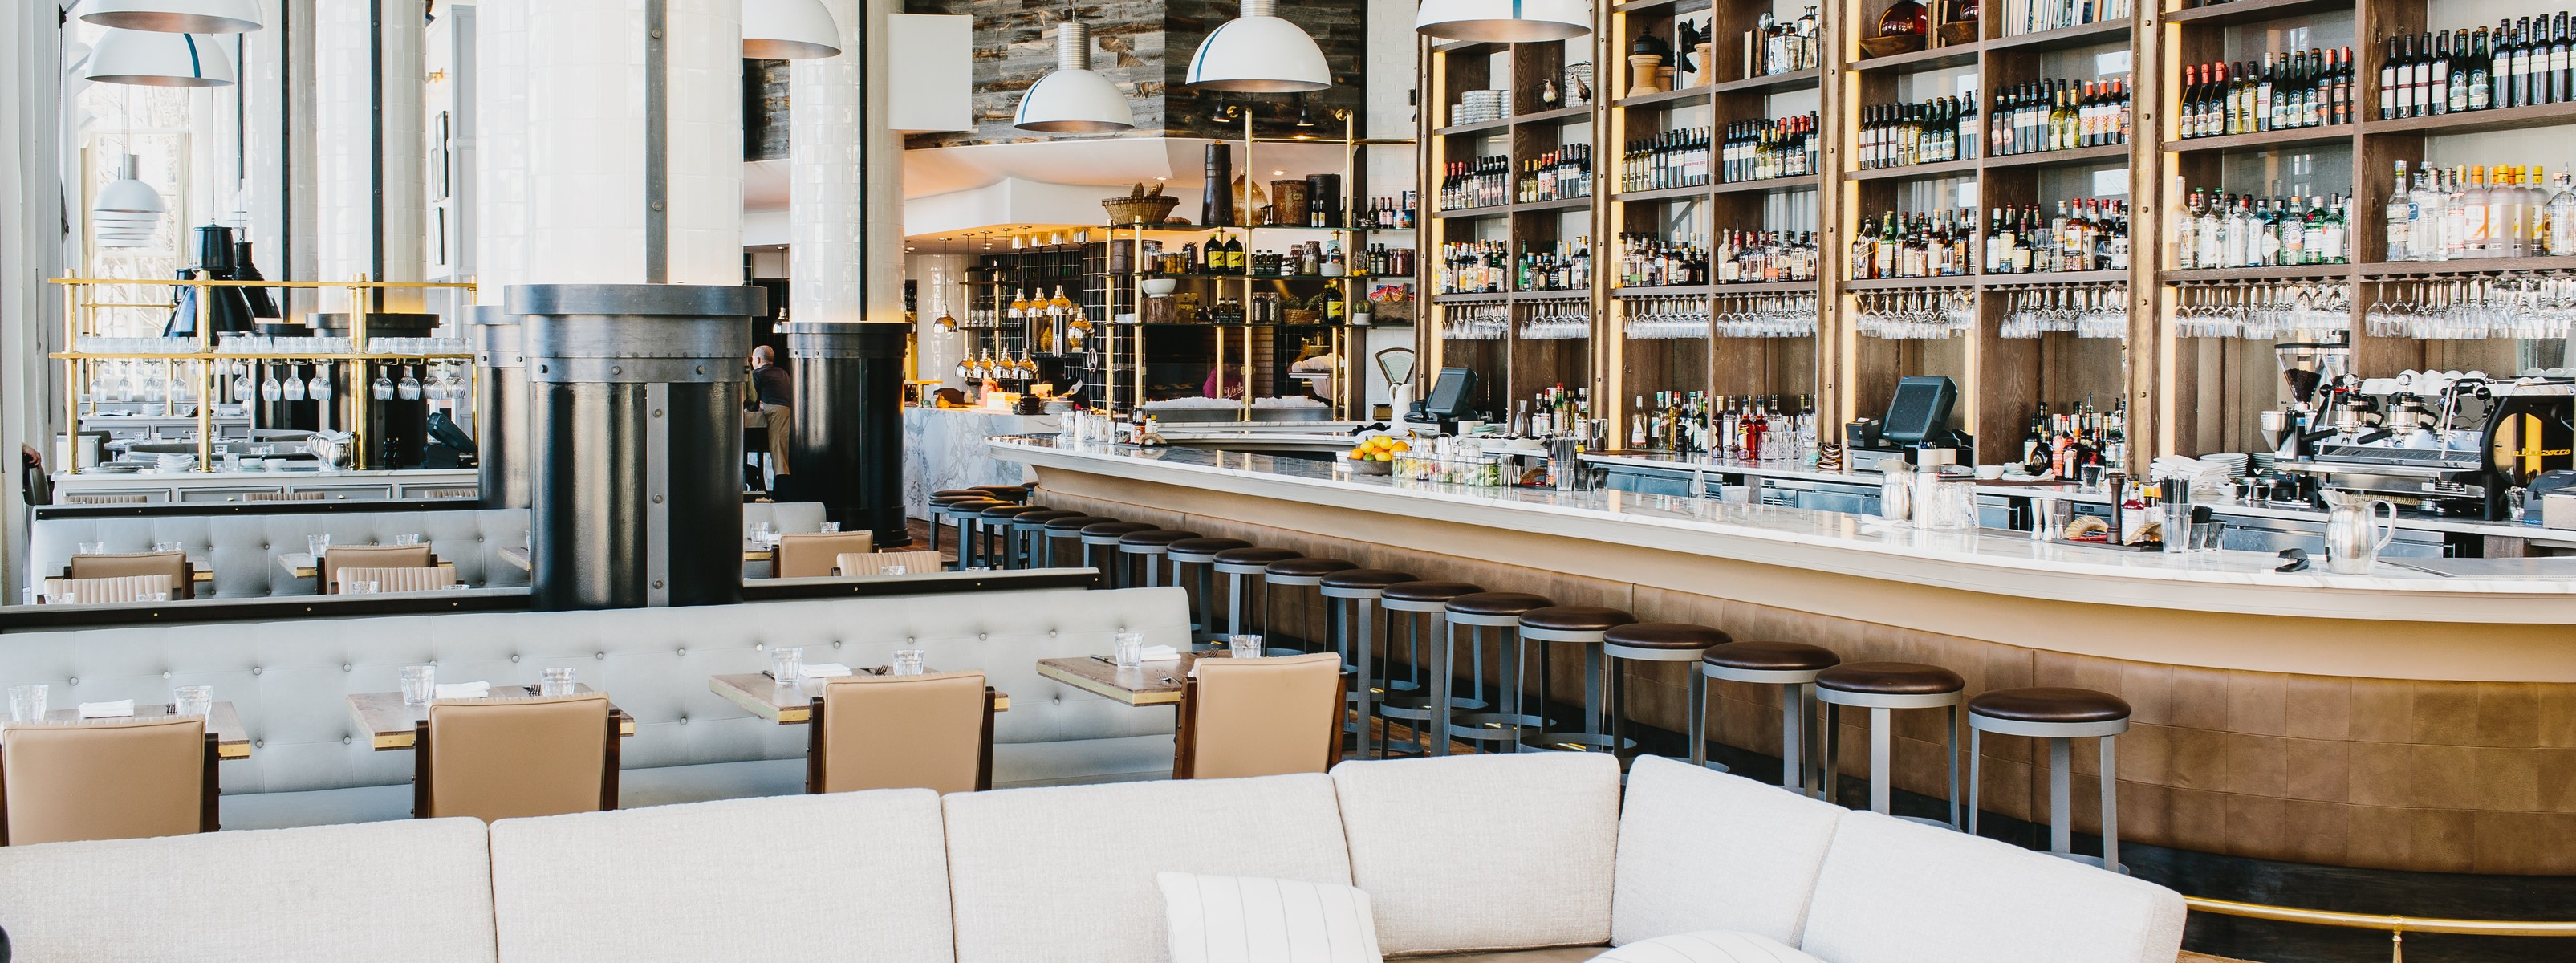 Where To Eat And Drink In Buckhead Buckhead Atlanta